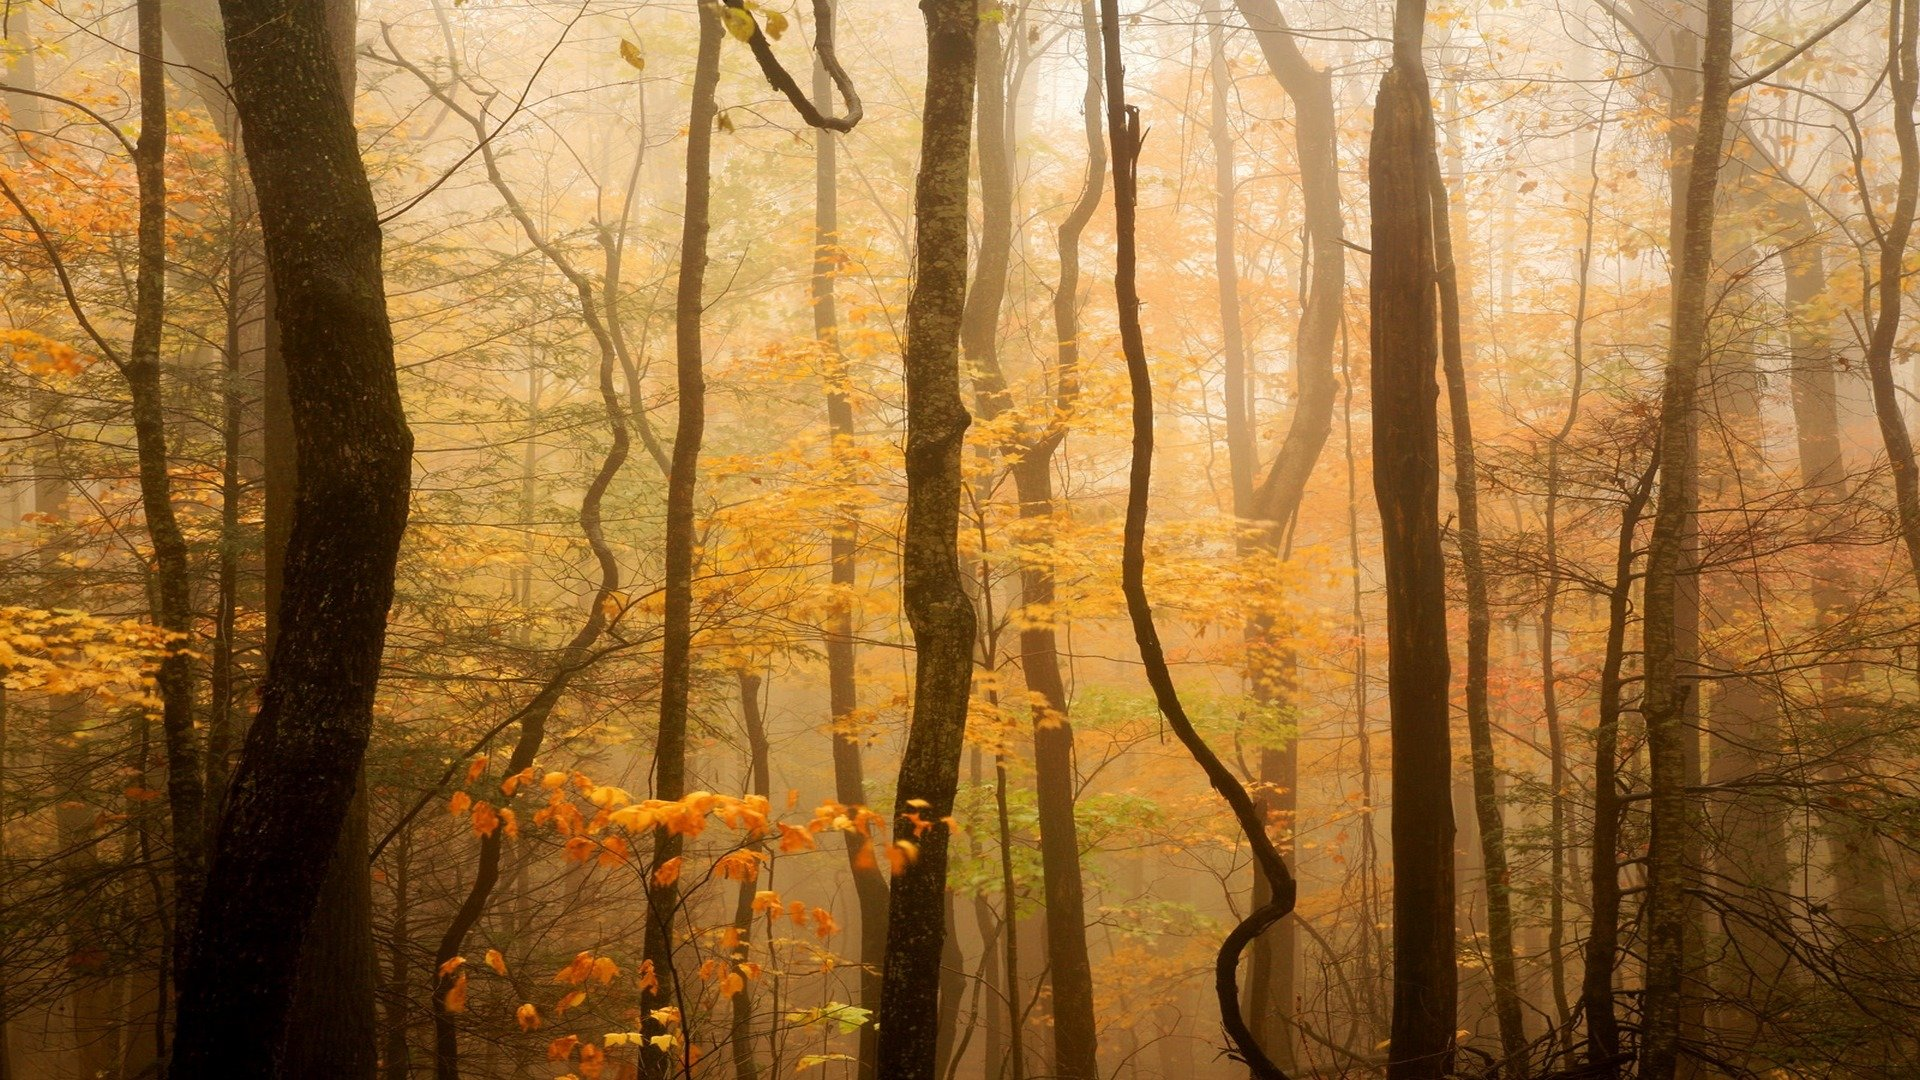 free download forest background id 474094 hd 1920x1080 for desktop